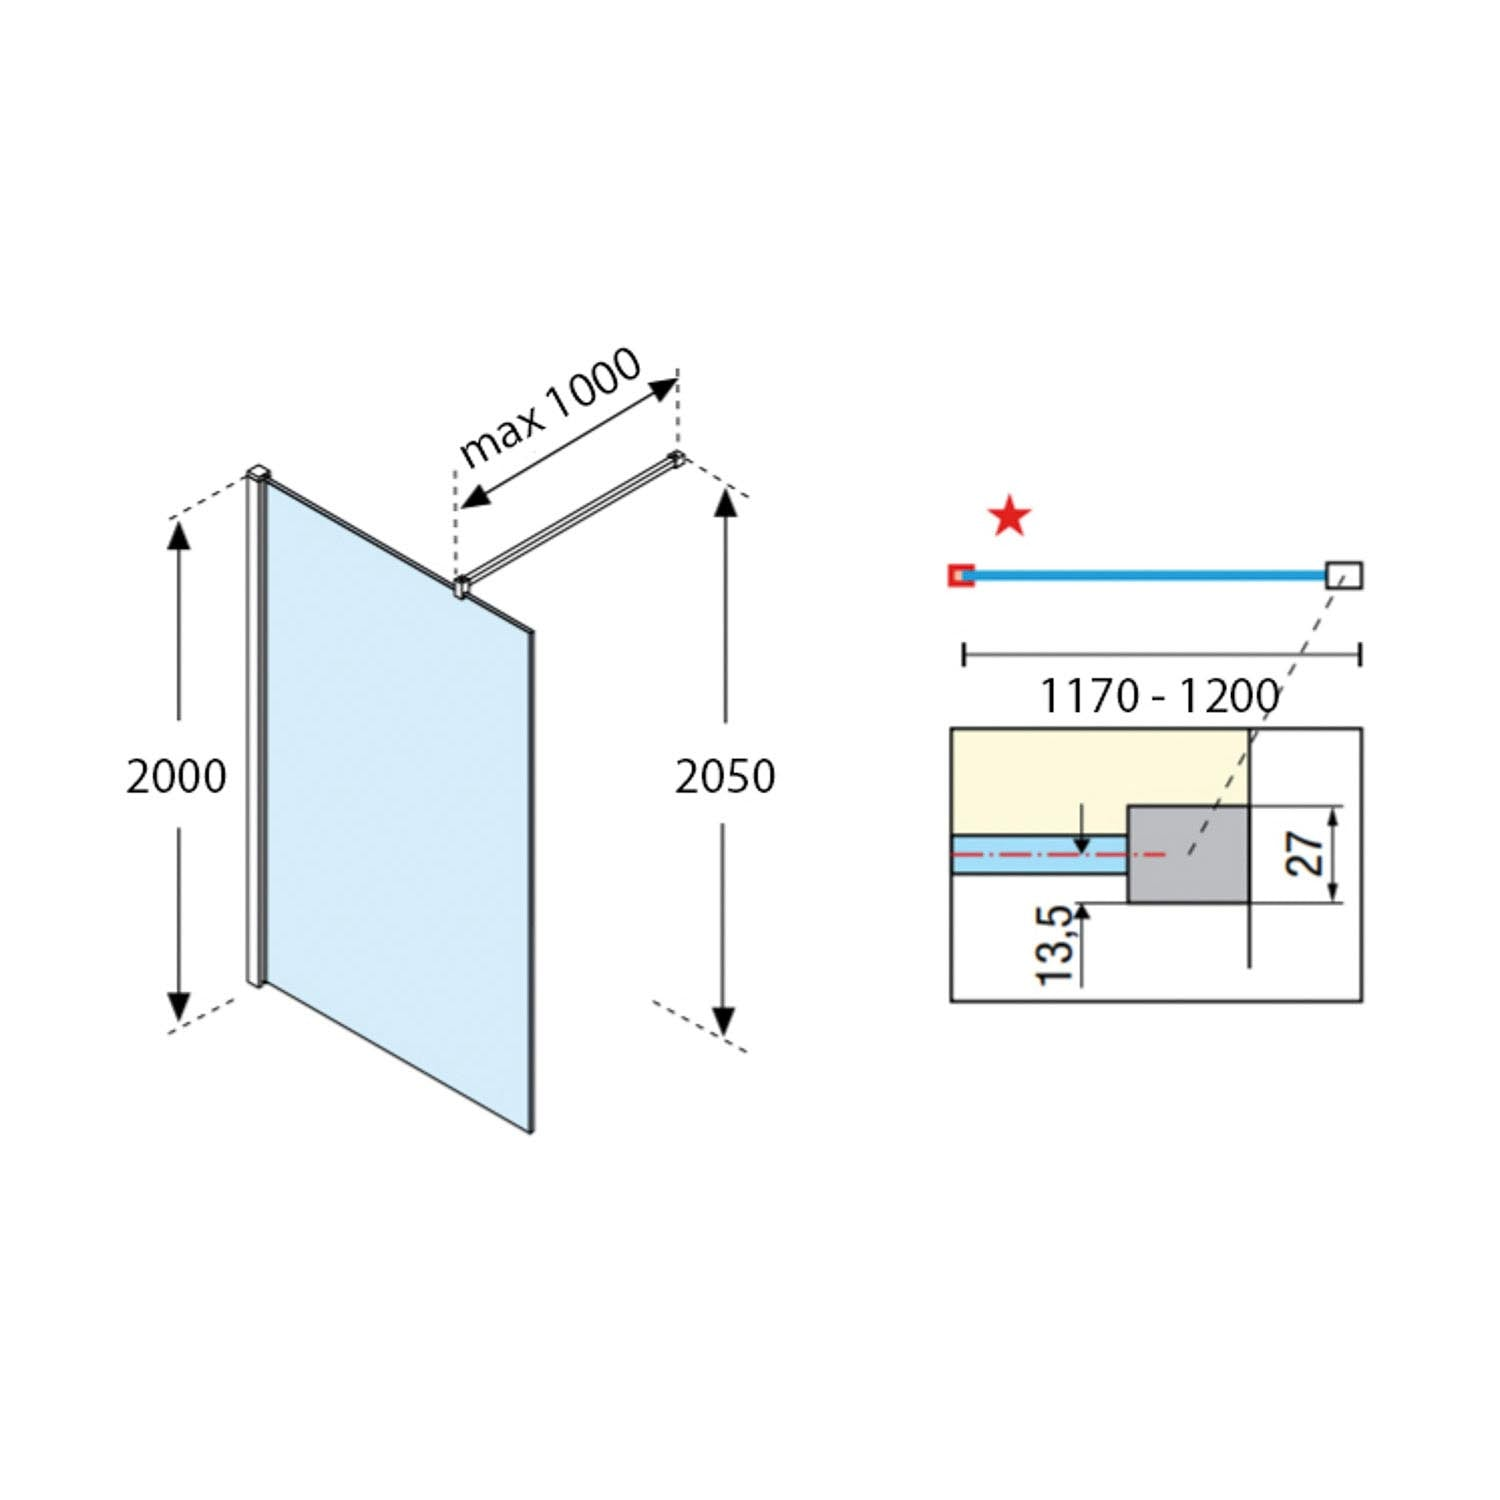 1170-1200mm Ergo Wet Room Screen Clear Glass with a matt black finish dimensional drawing